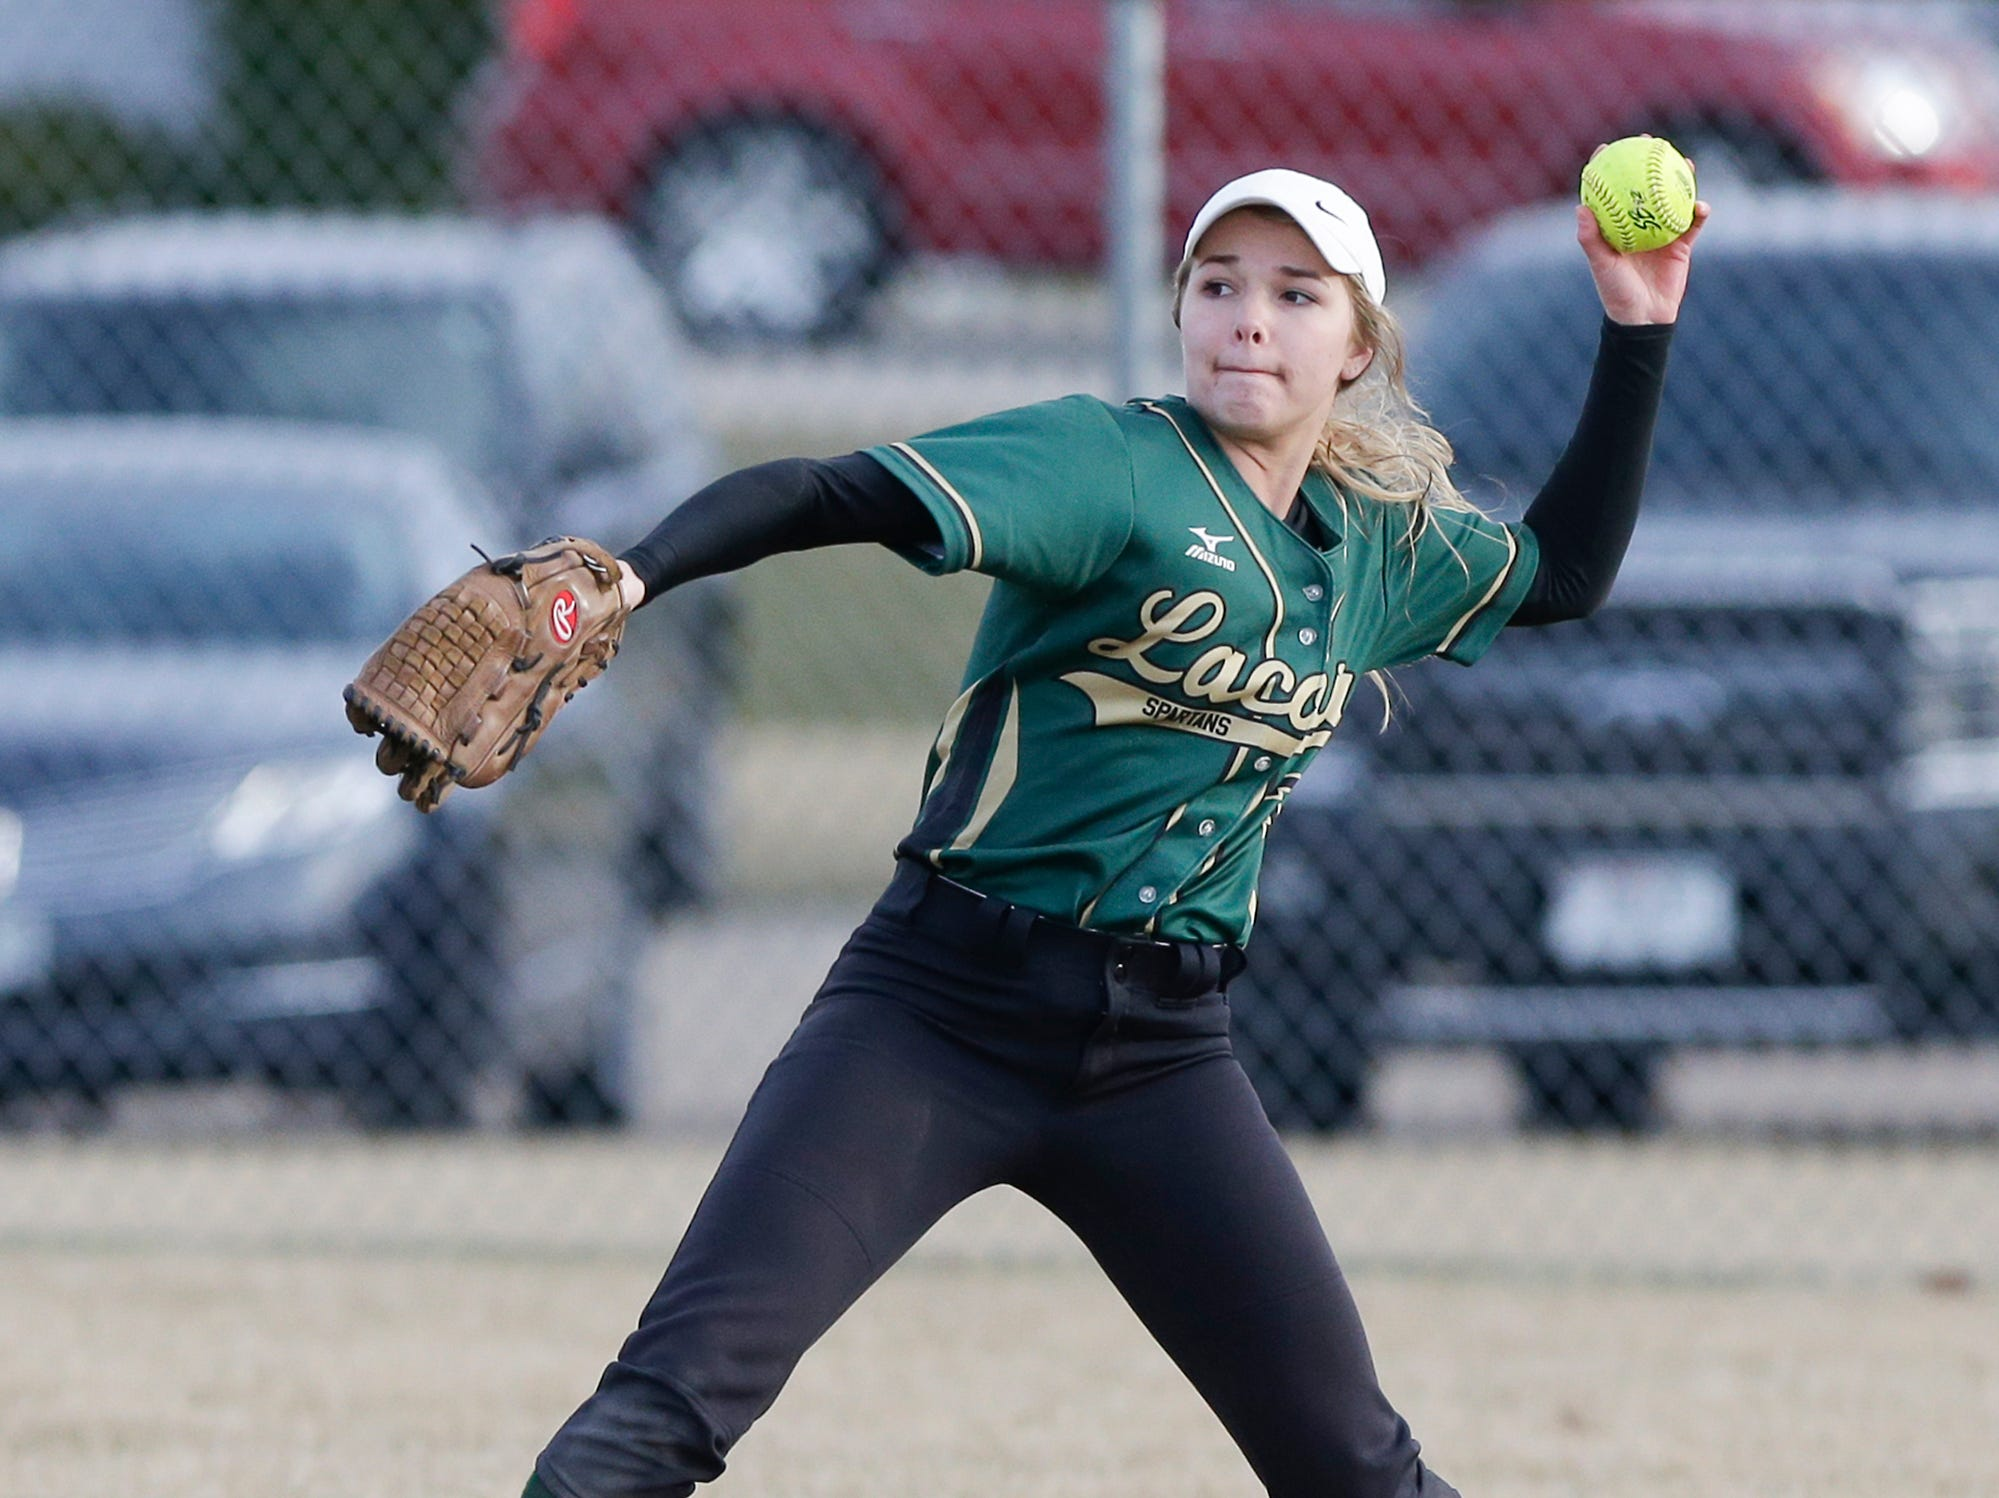 Laconia High School softball's Hailey Bartz fields a ball against Winnebago Lutheran Academy April 9, 2019 during their game in Fond du Lac, Wis. Laconia won the game 25-9. Doug Raflik/USA TODAY NETWORK-Wisconsin